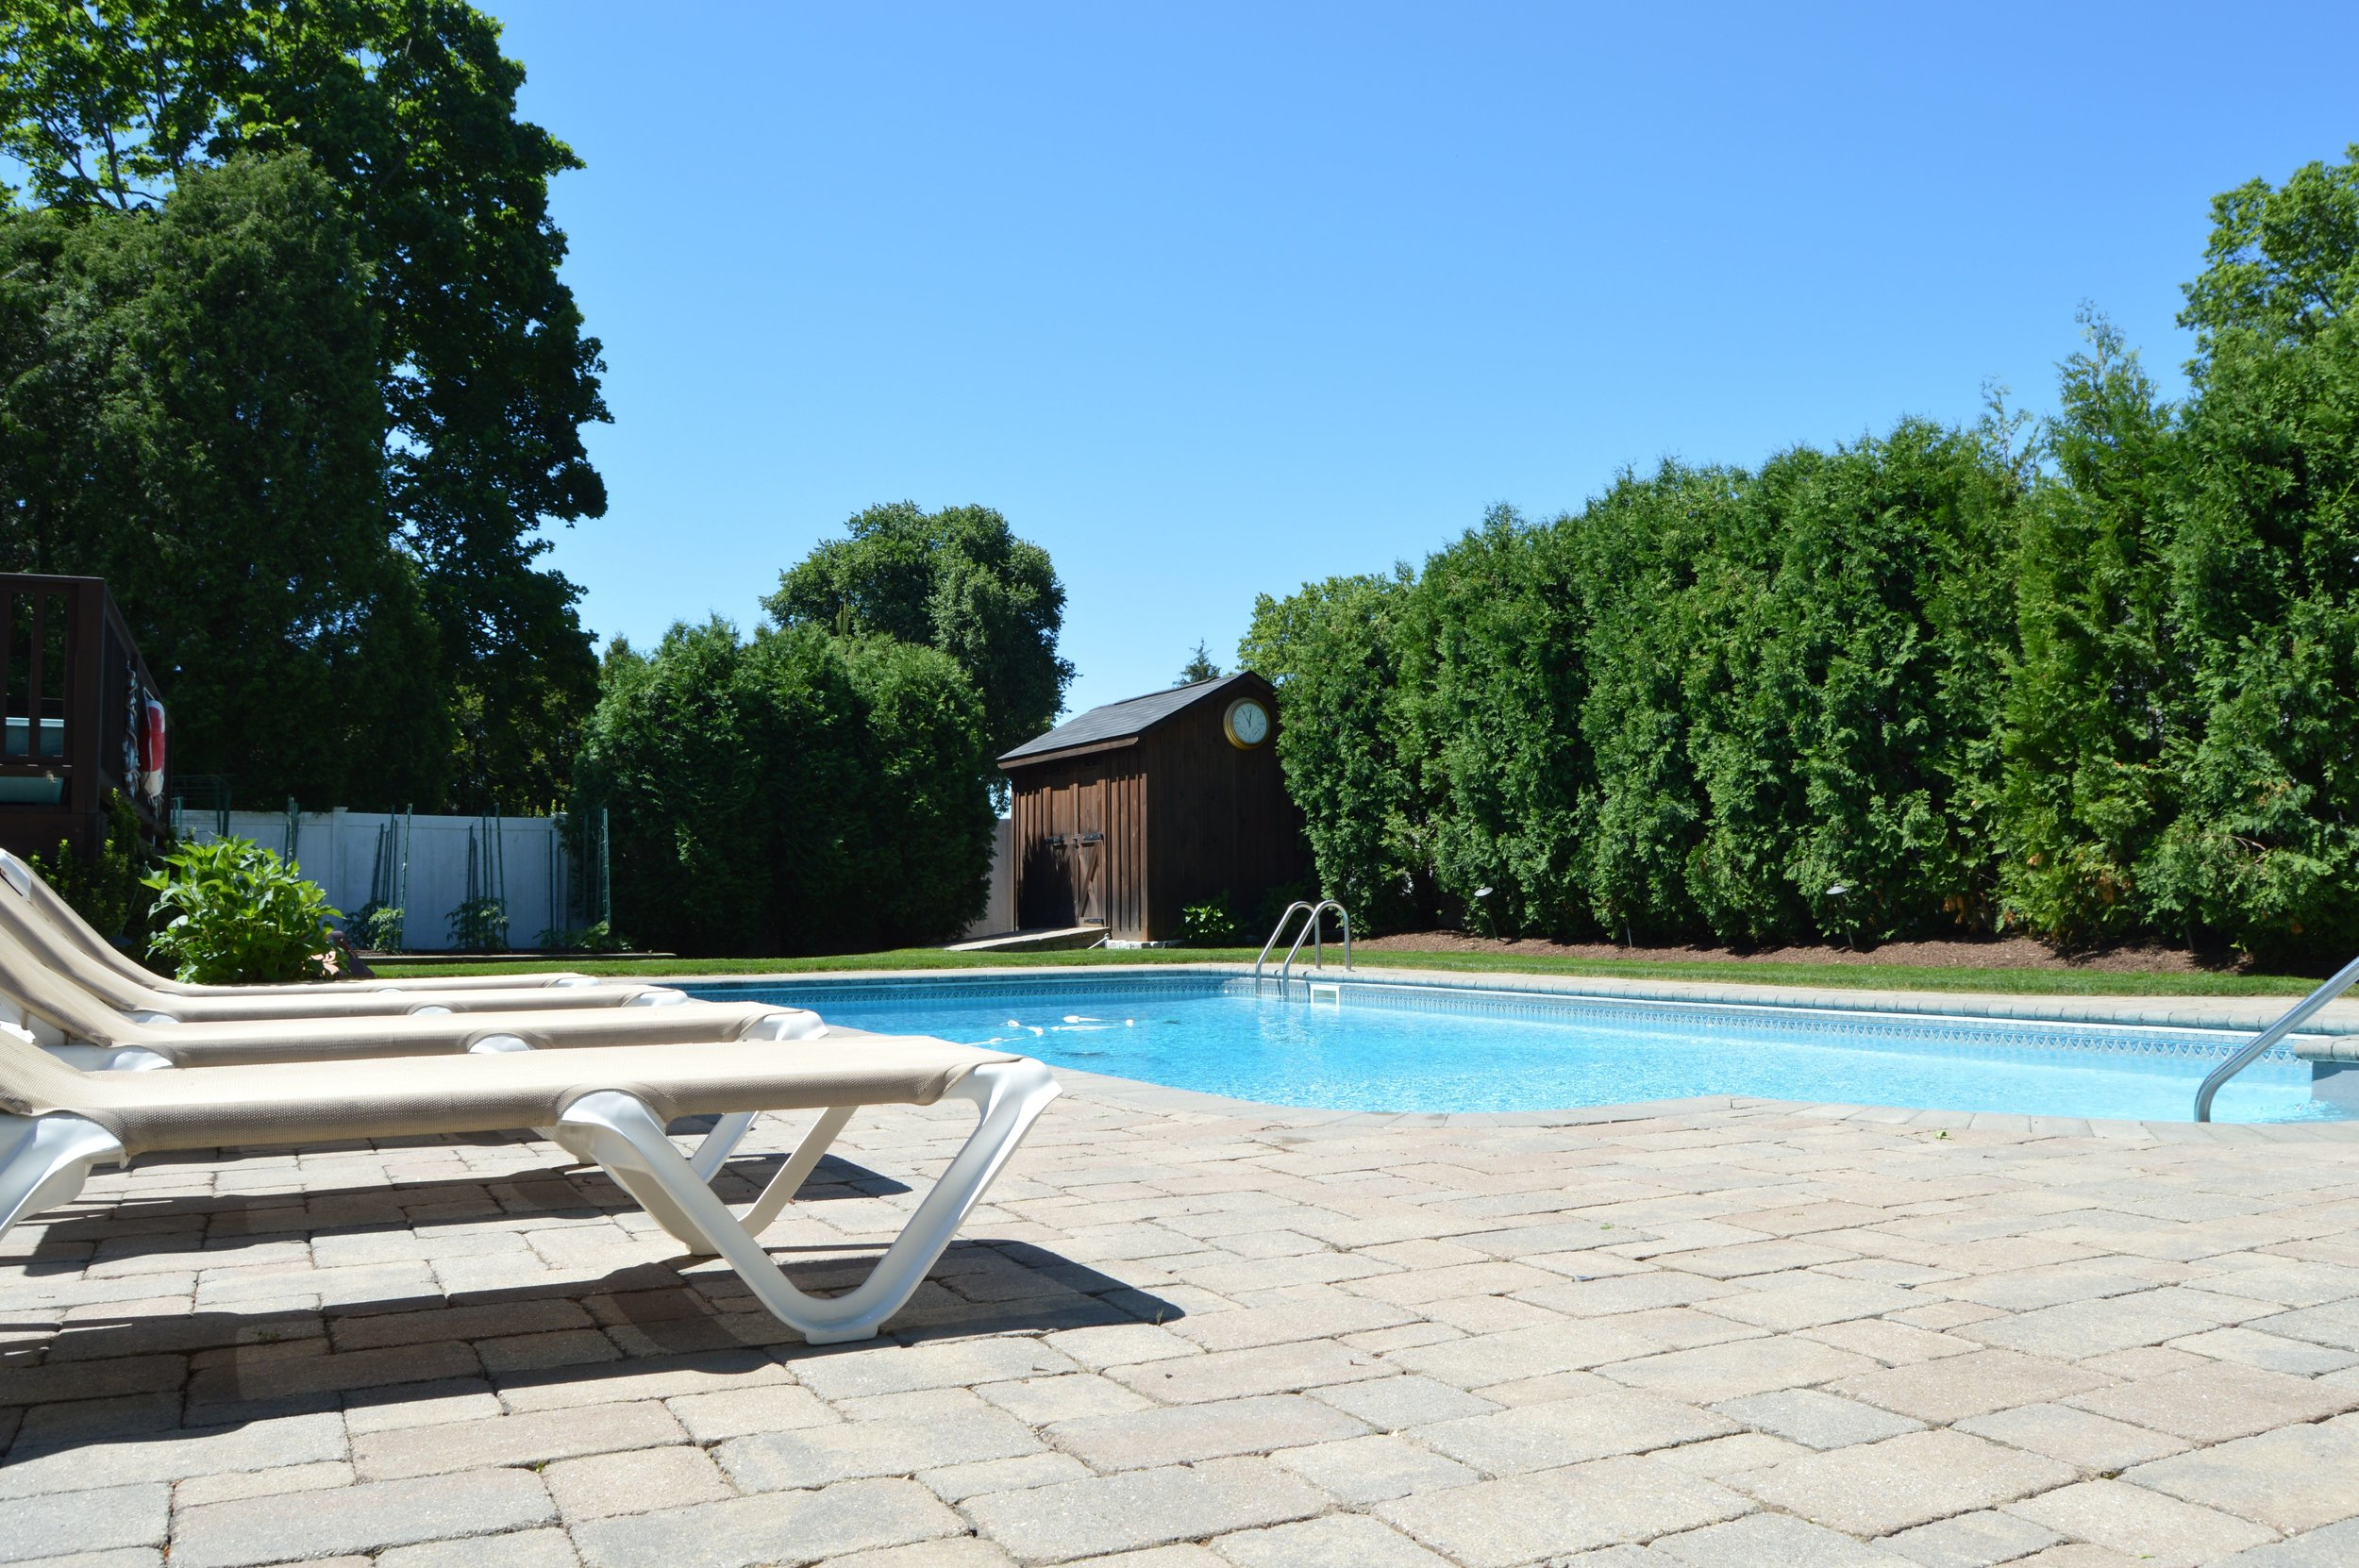 Professional landscape design with pool deck in Chappaqua, NY